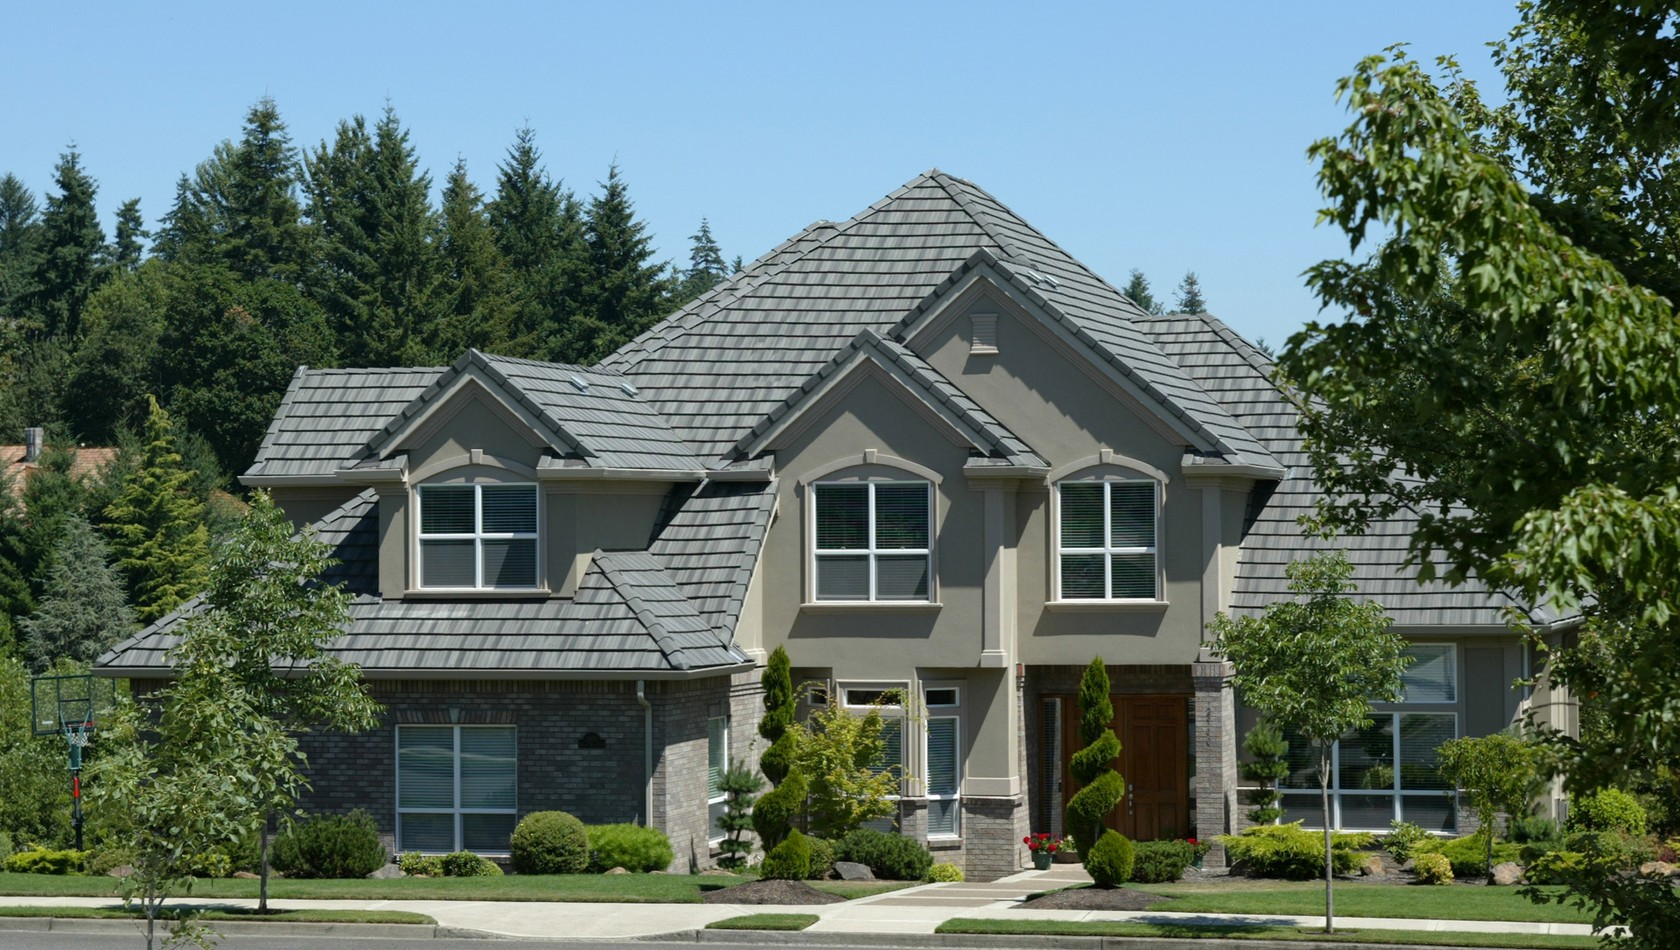 Main image for house plan 2301: The Concordia